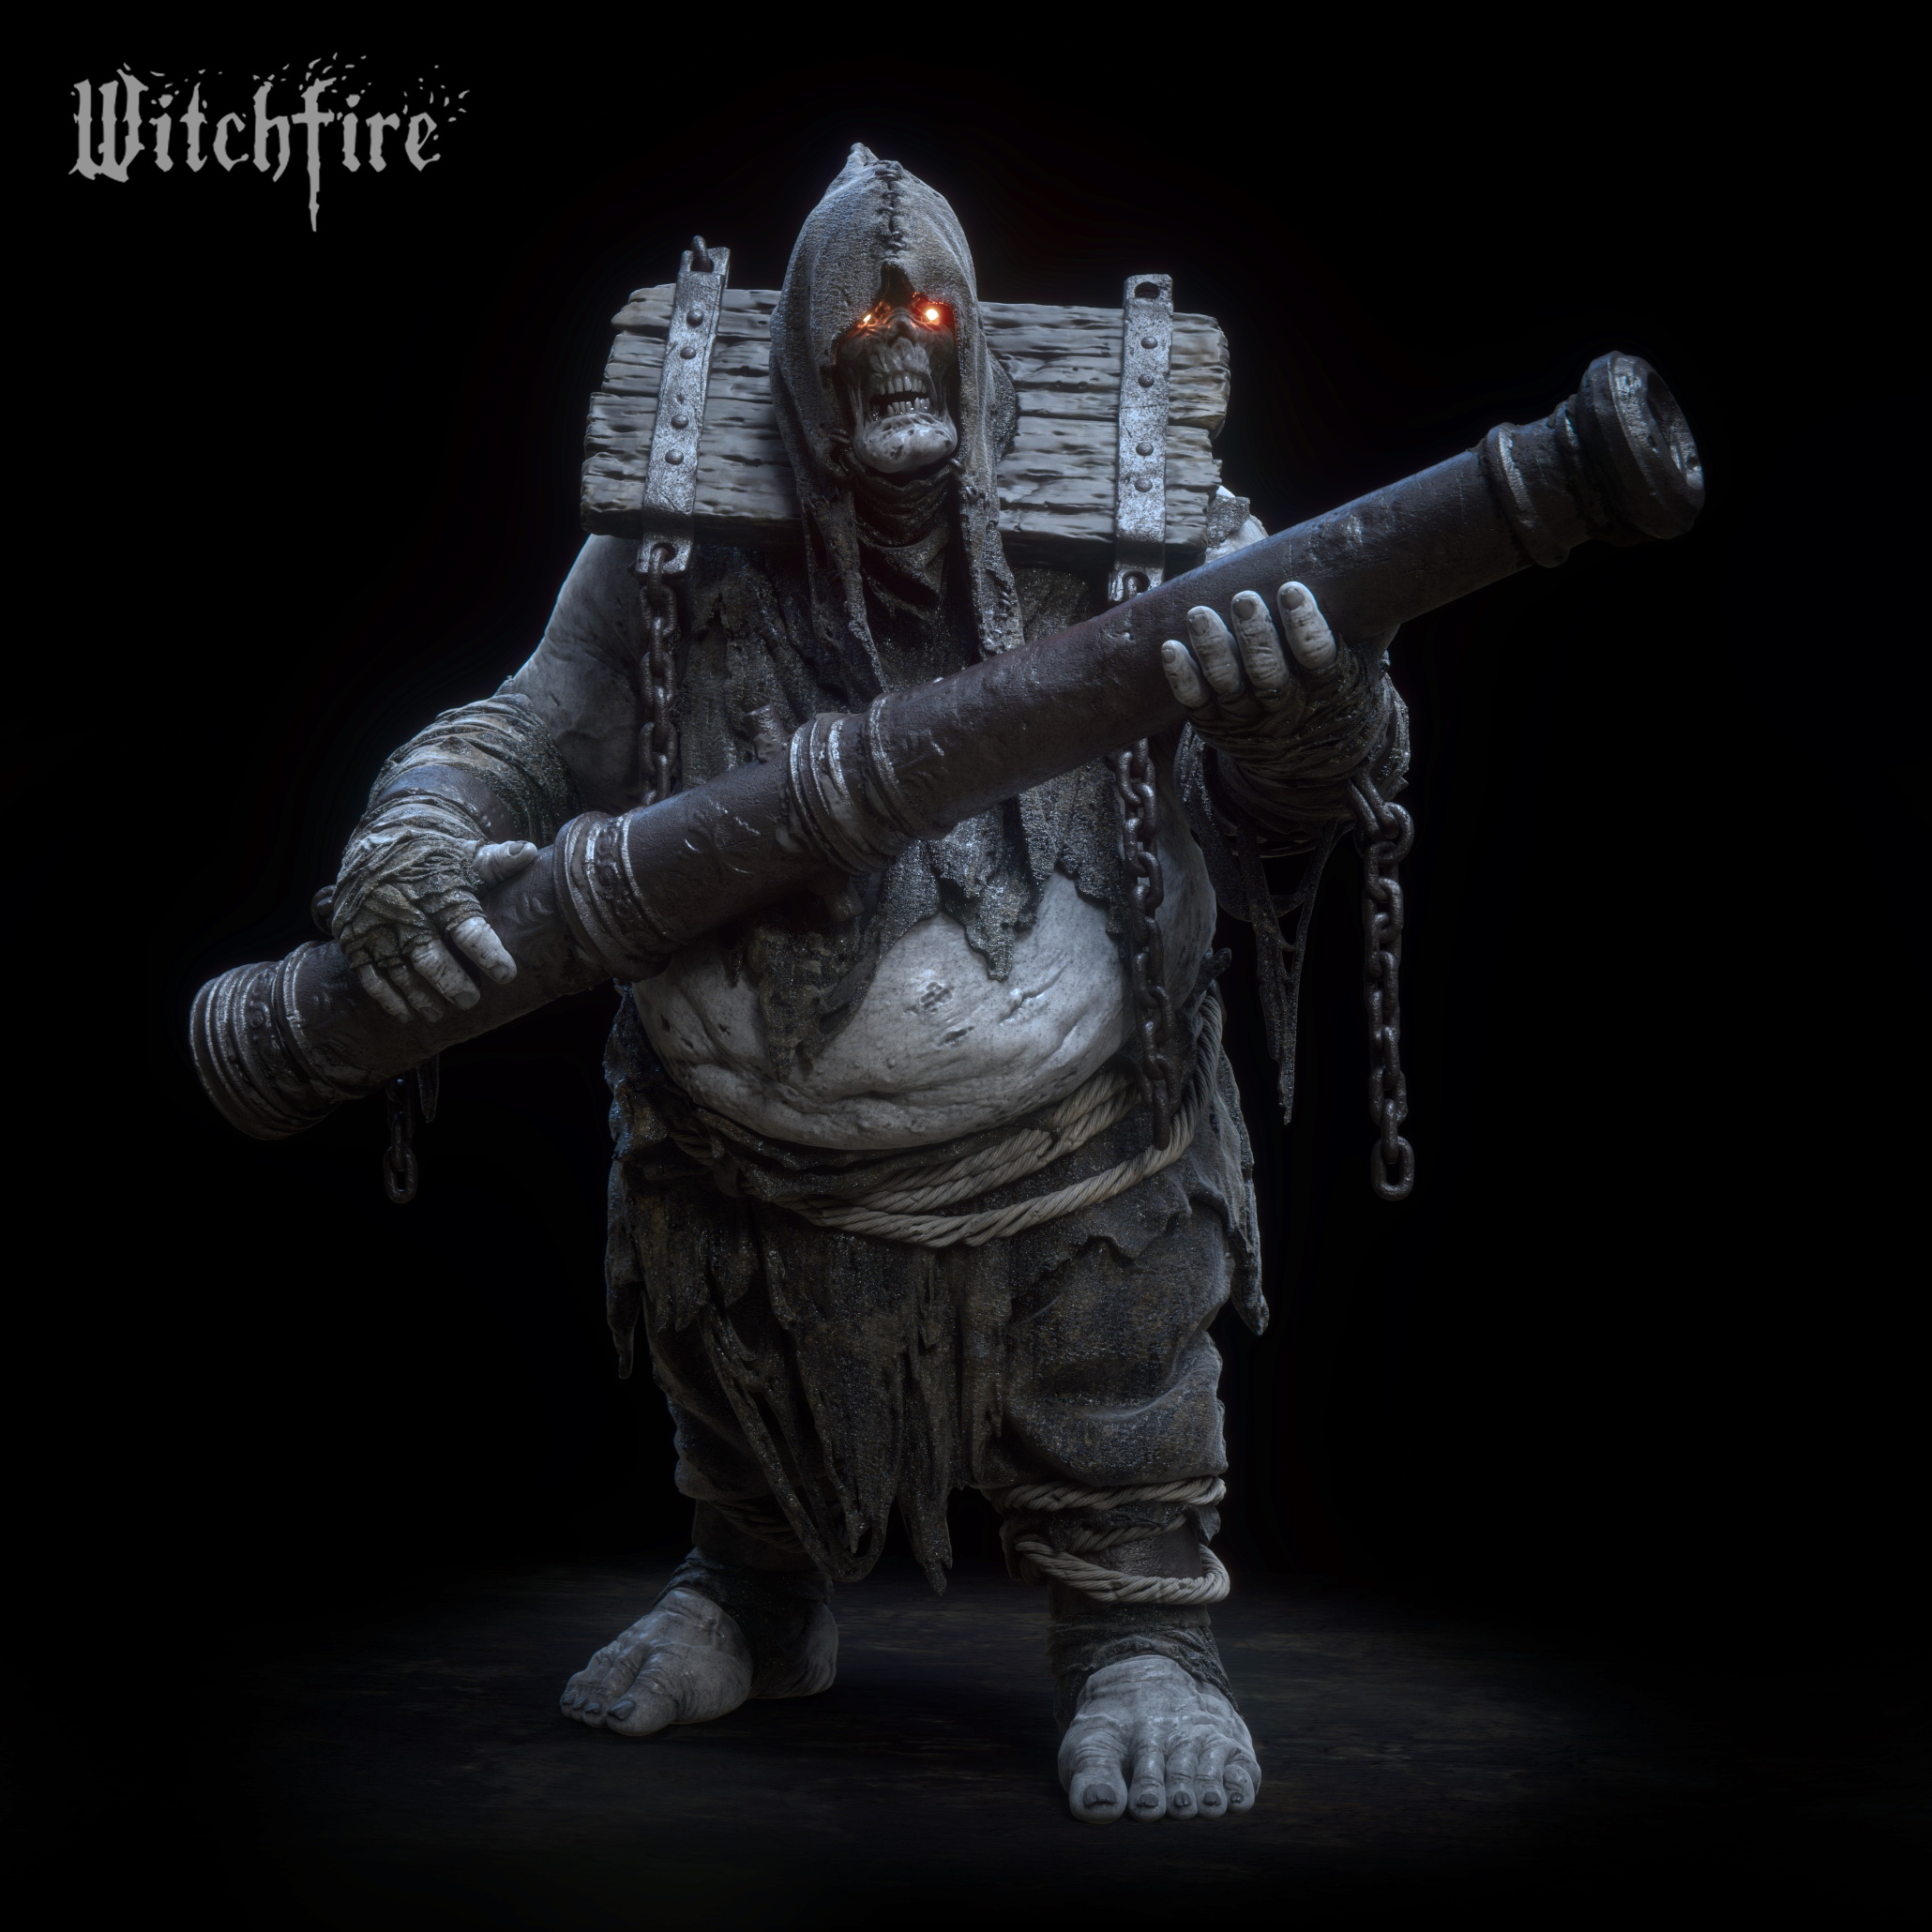 witchfire_ogr_render_06_single_A.jpg